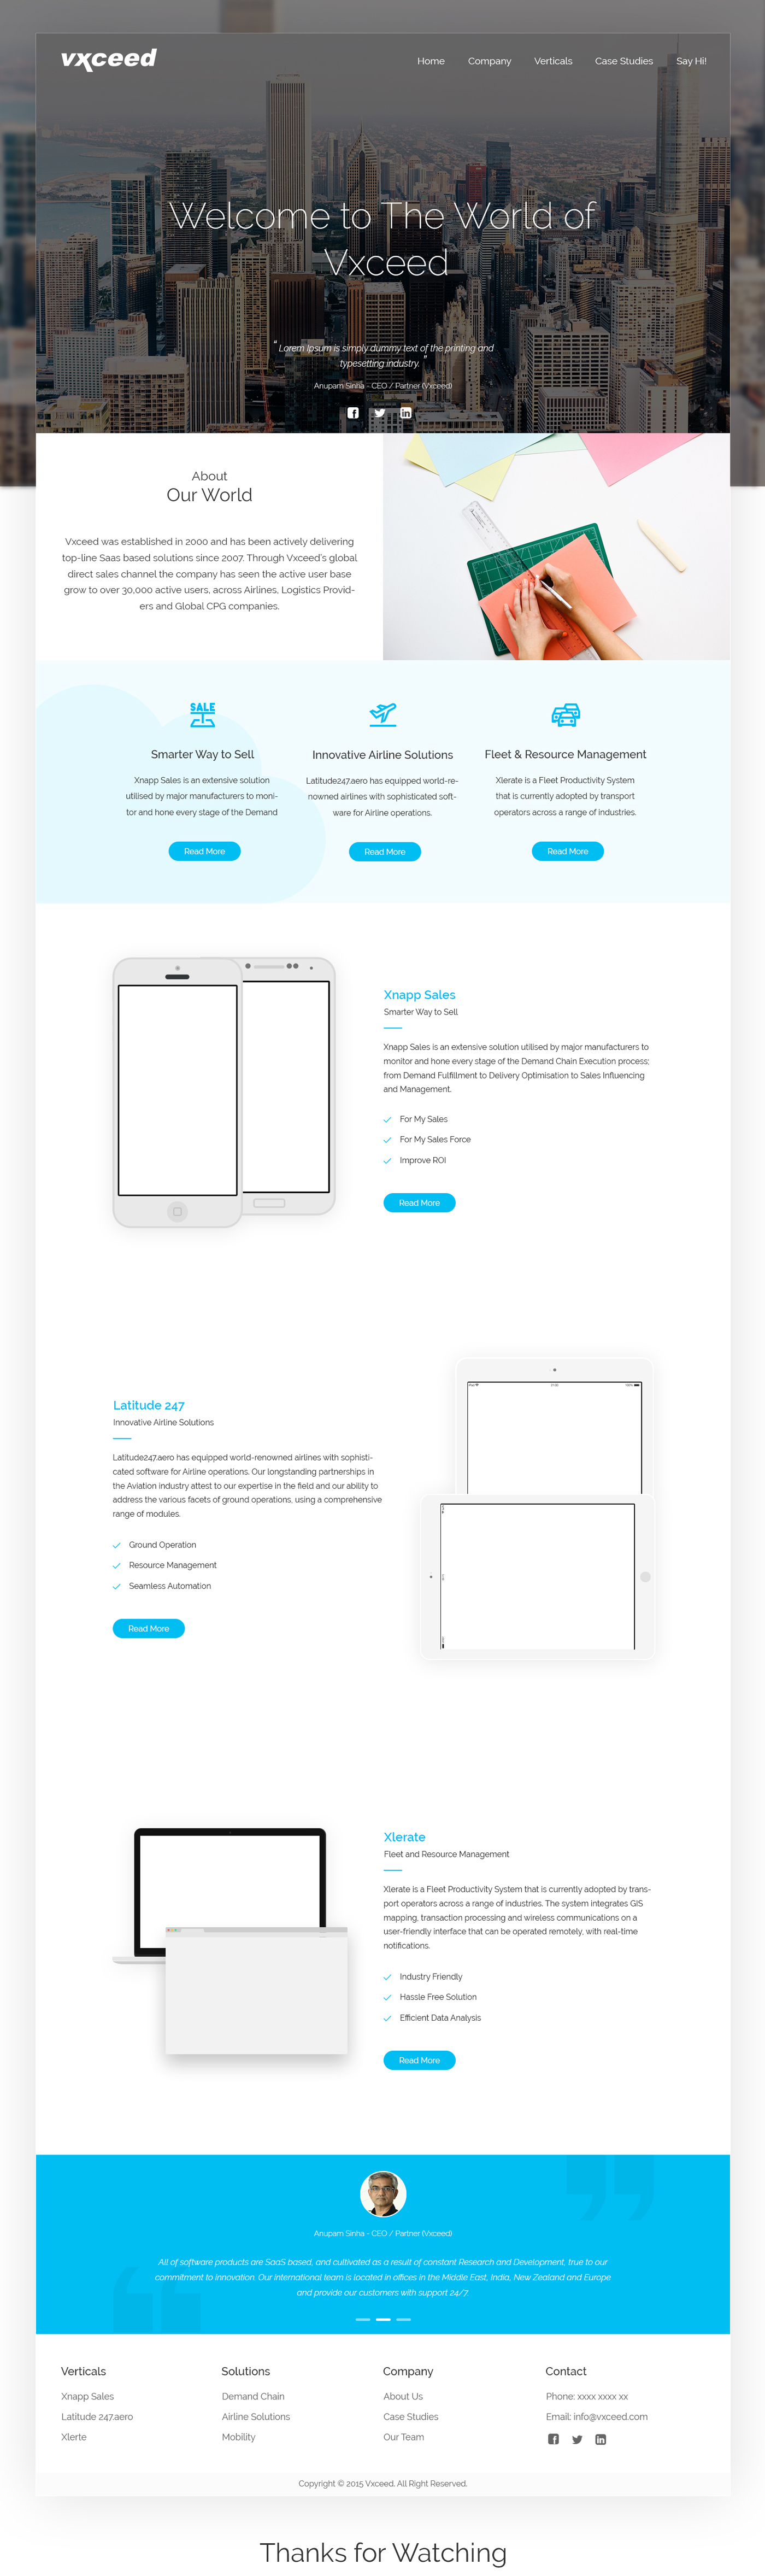 photoshop UI ux redesign landing page